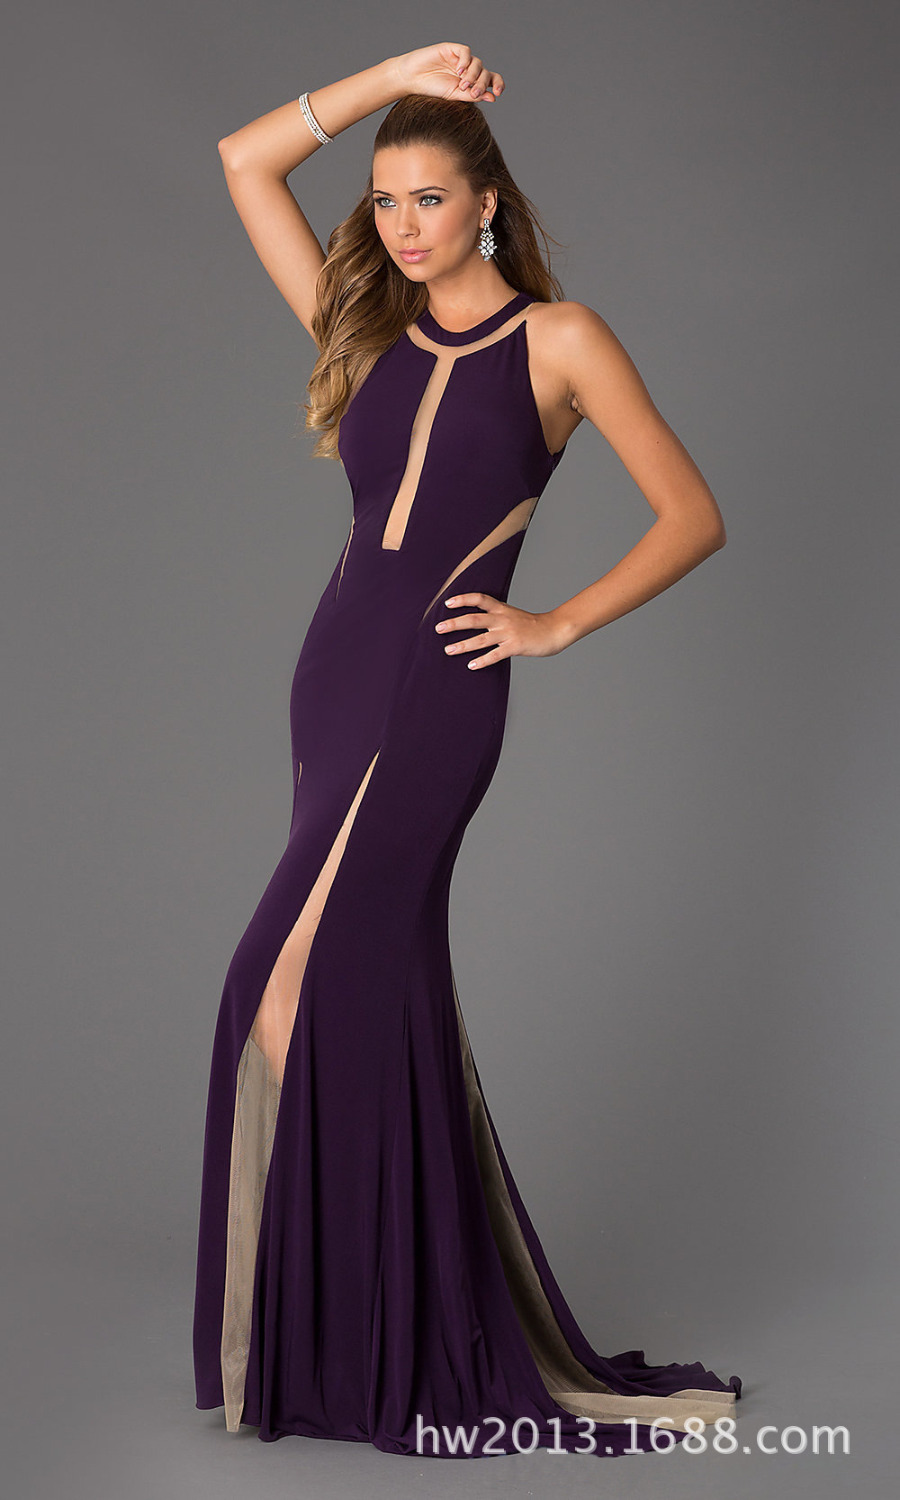 Women'S Elegant Evening Dresses 32